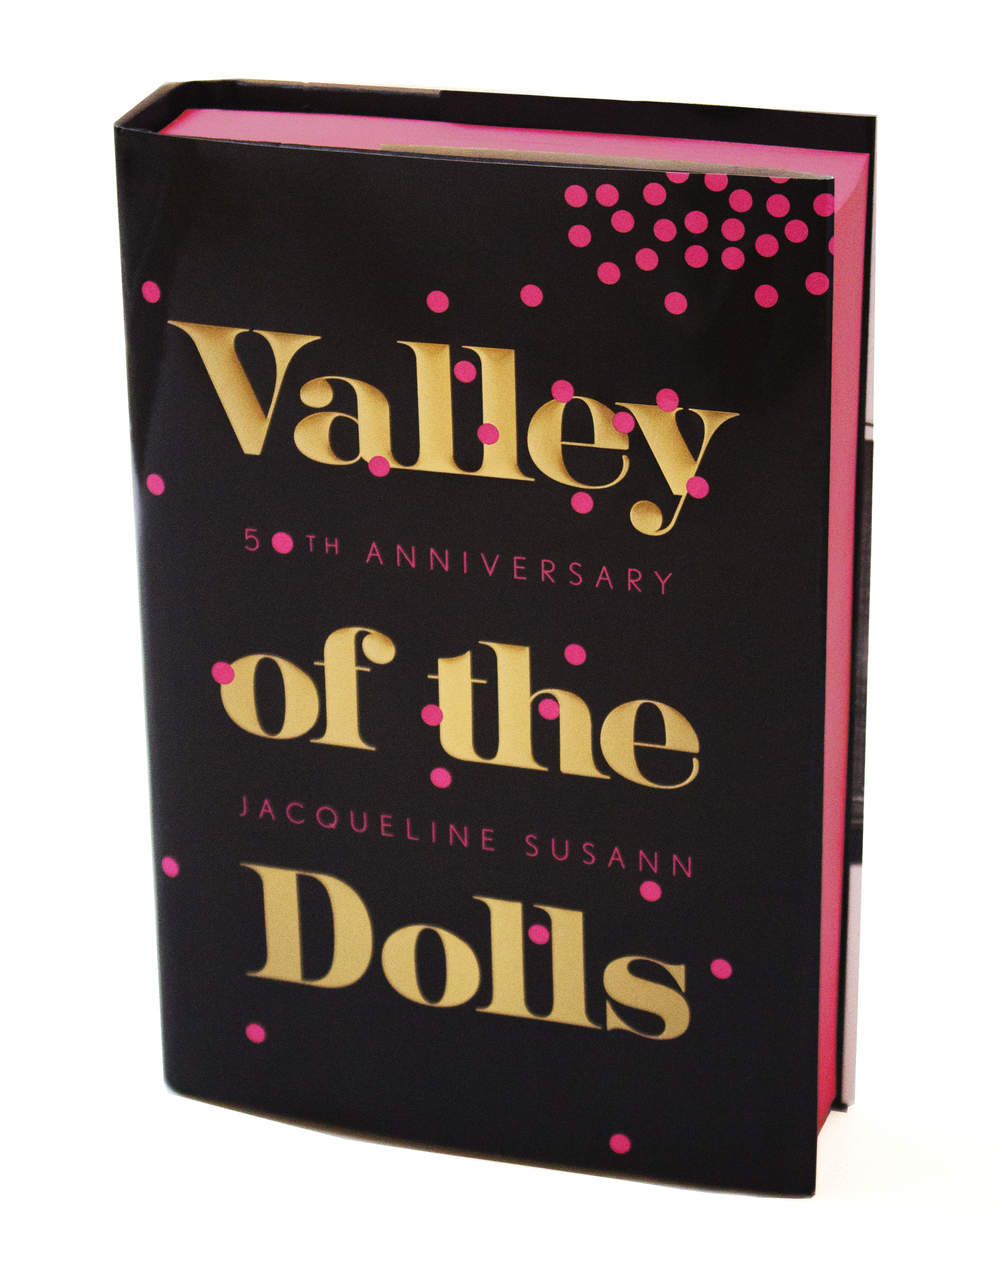 valley-of-the-dolls-cover.jpg